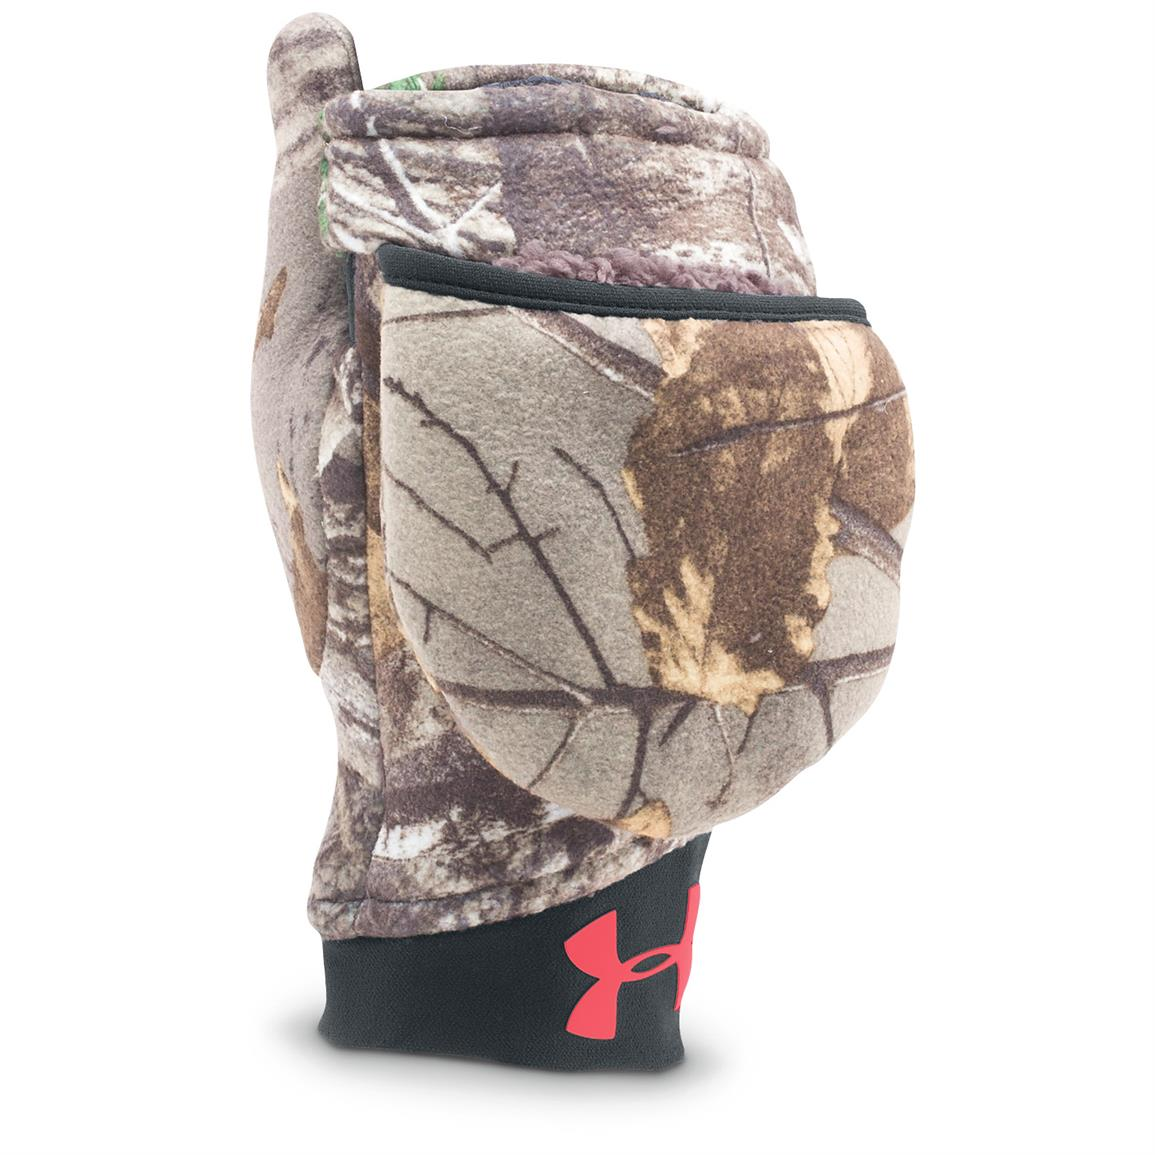 Under Armour Women's Camo Mittens, Pink Chroma